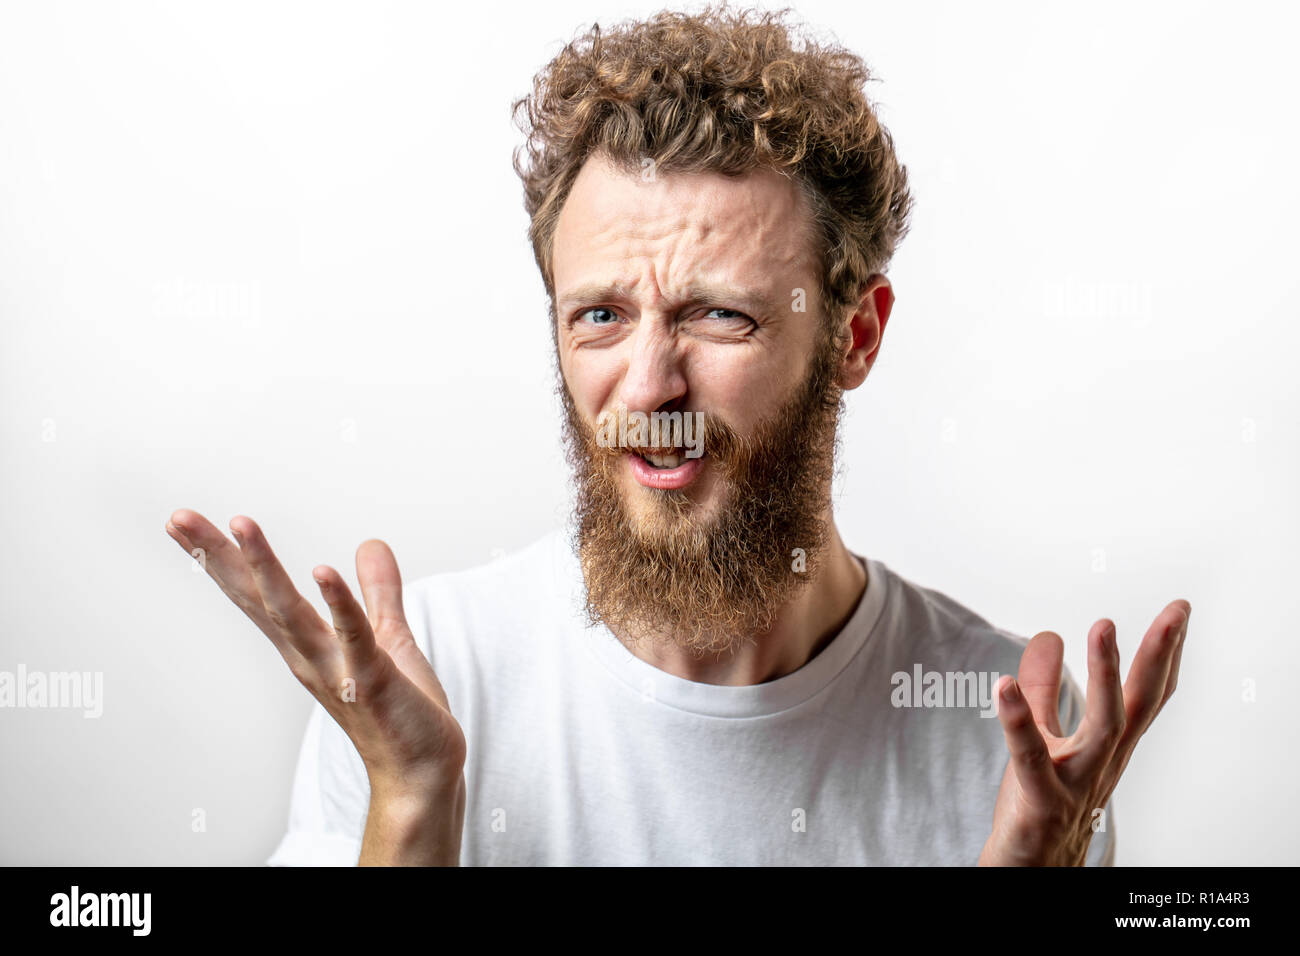 Close up portrait of grumpy young bearded man in t-shirt looking at camera. - Stock Image